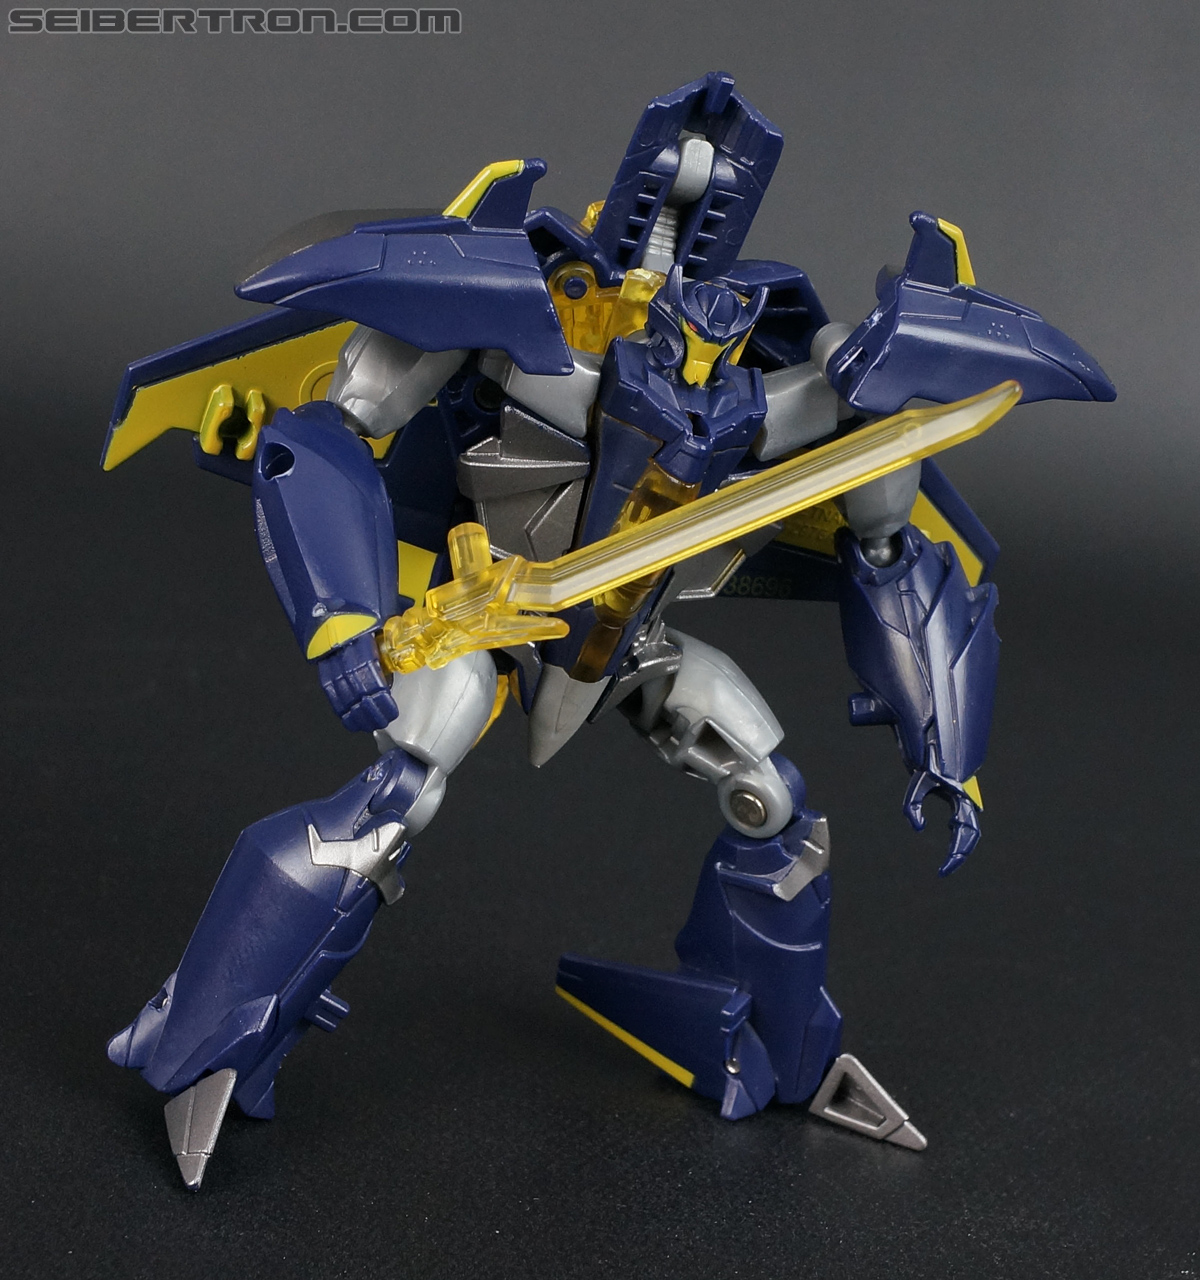 Transformers Prime: Cyberverse Dreadwing (Image #95 of 129)